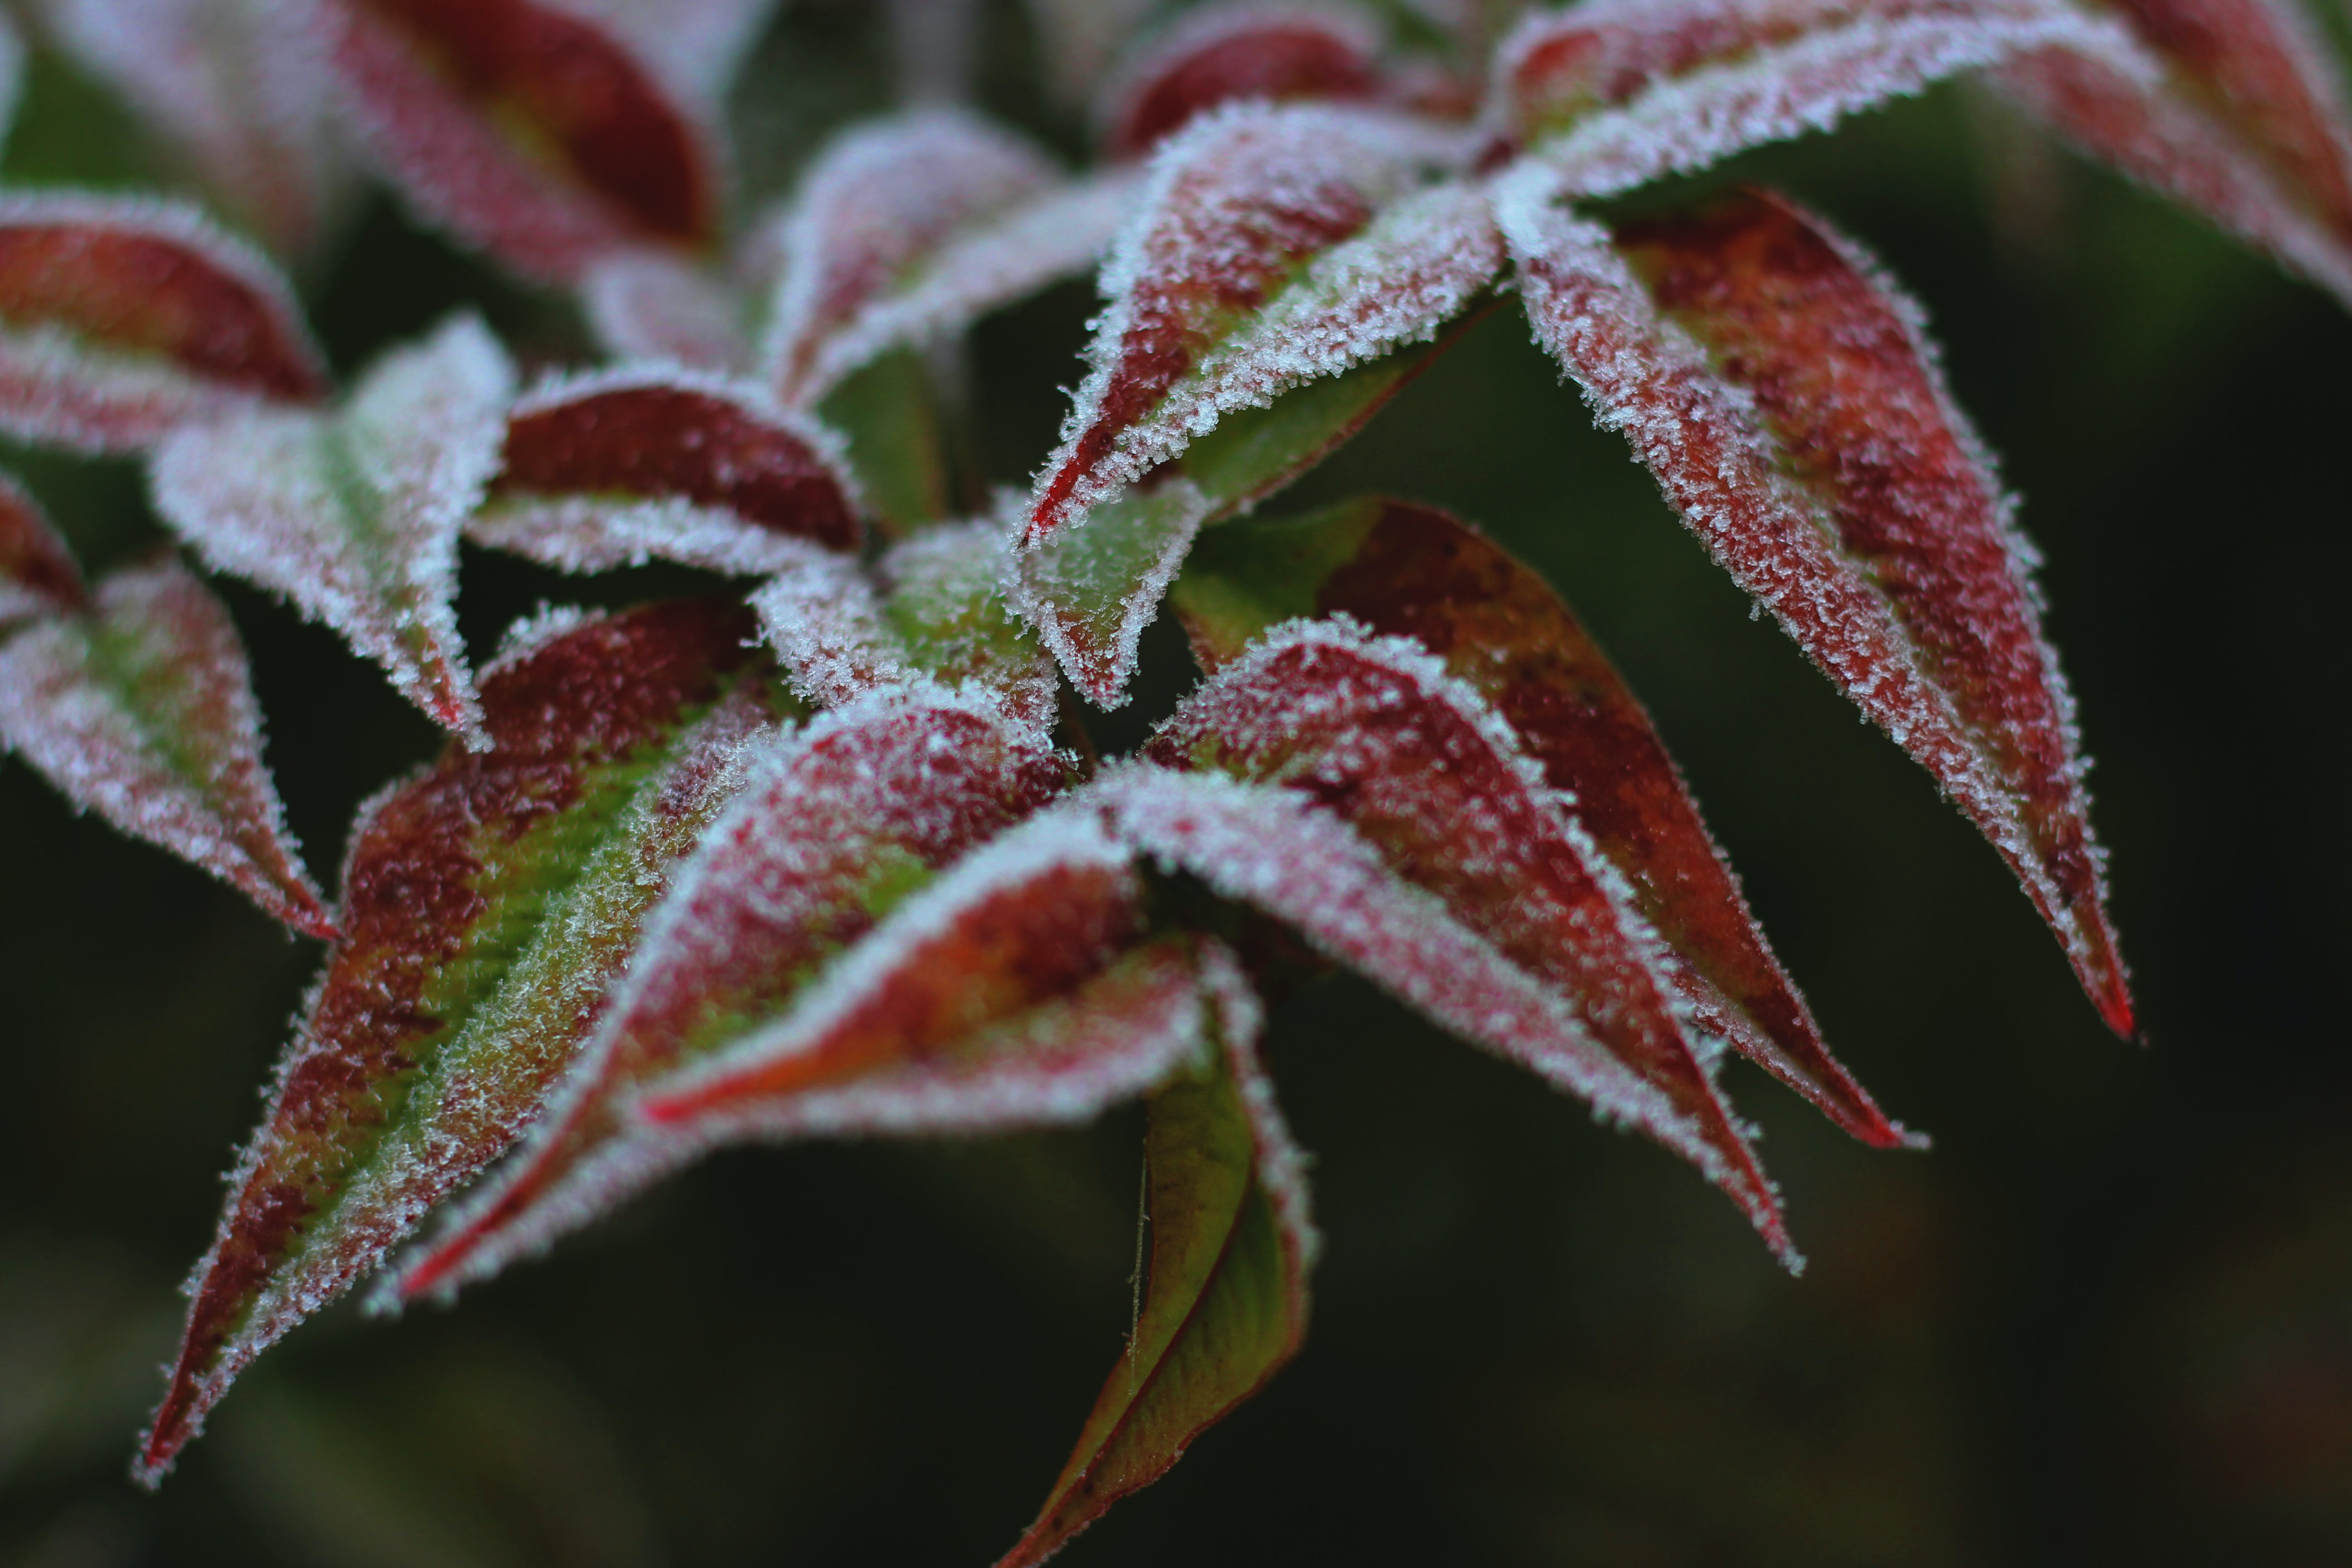 Free stock photo of garden plant, ice, red